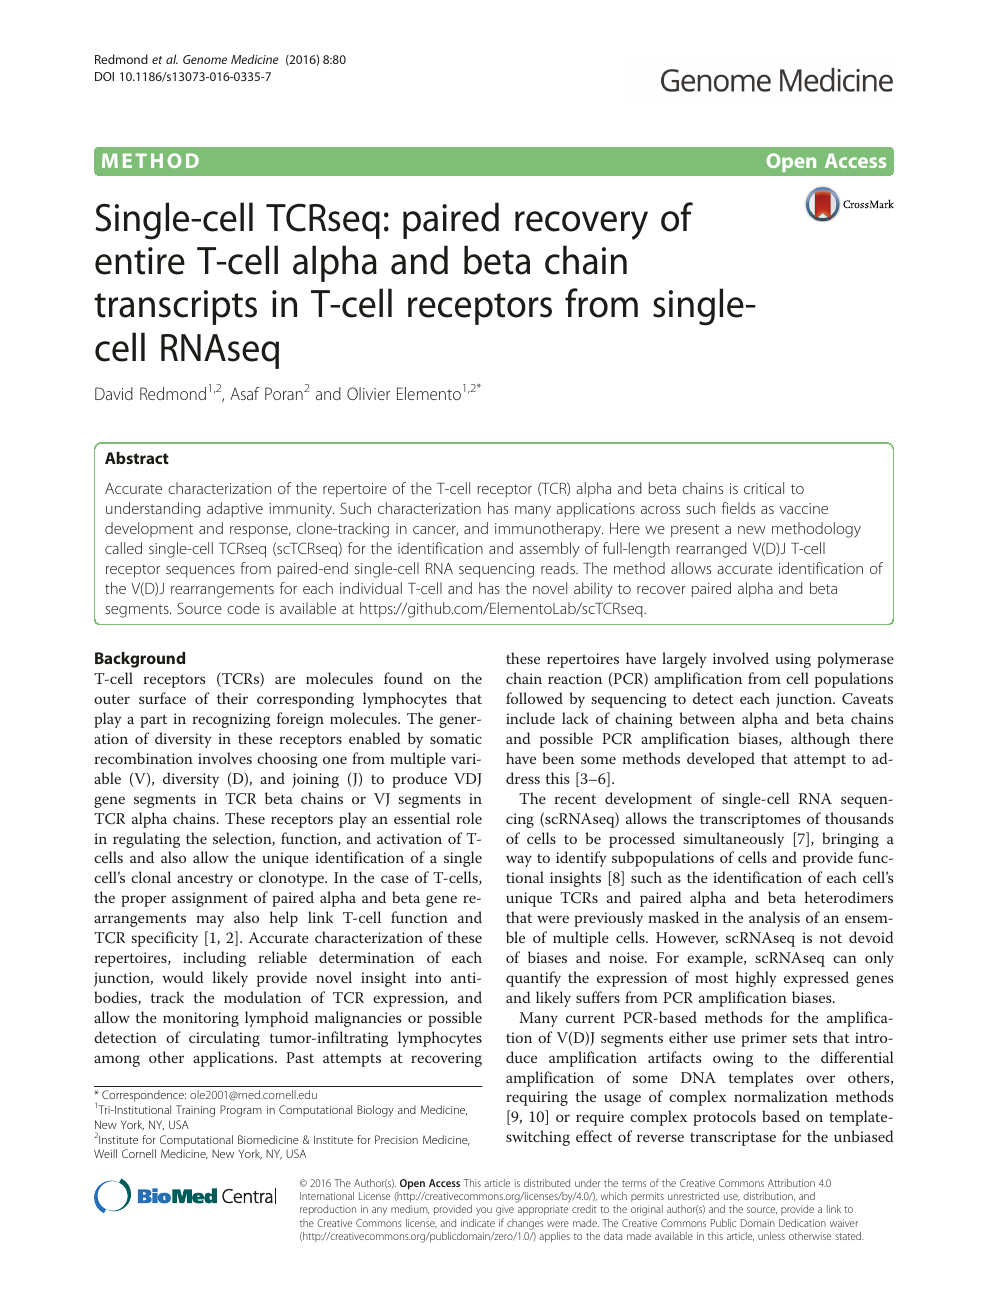 Single-cell TCRseq: paired recovery of entire T-cell alpha and beta